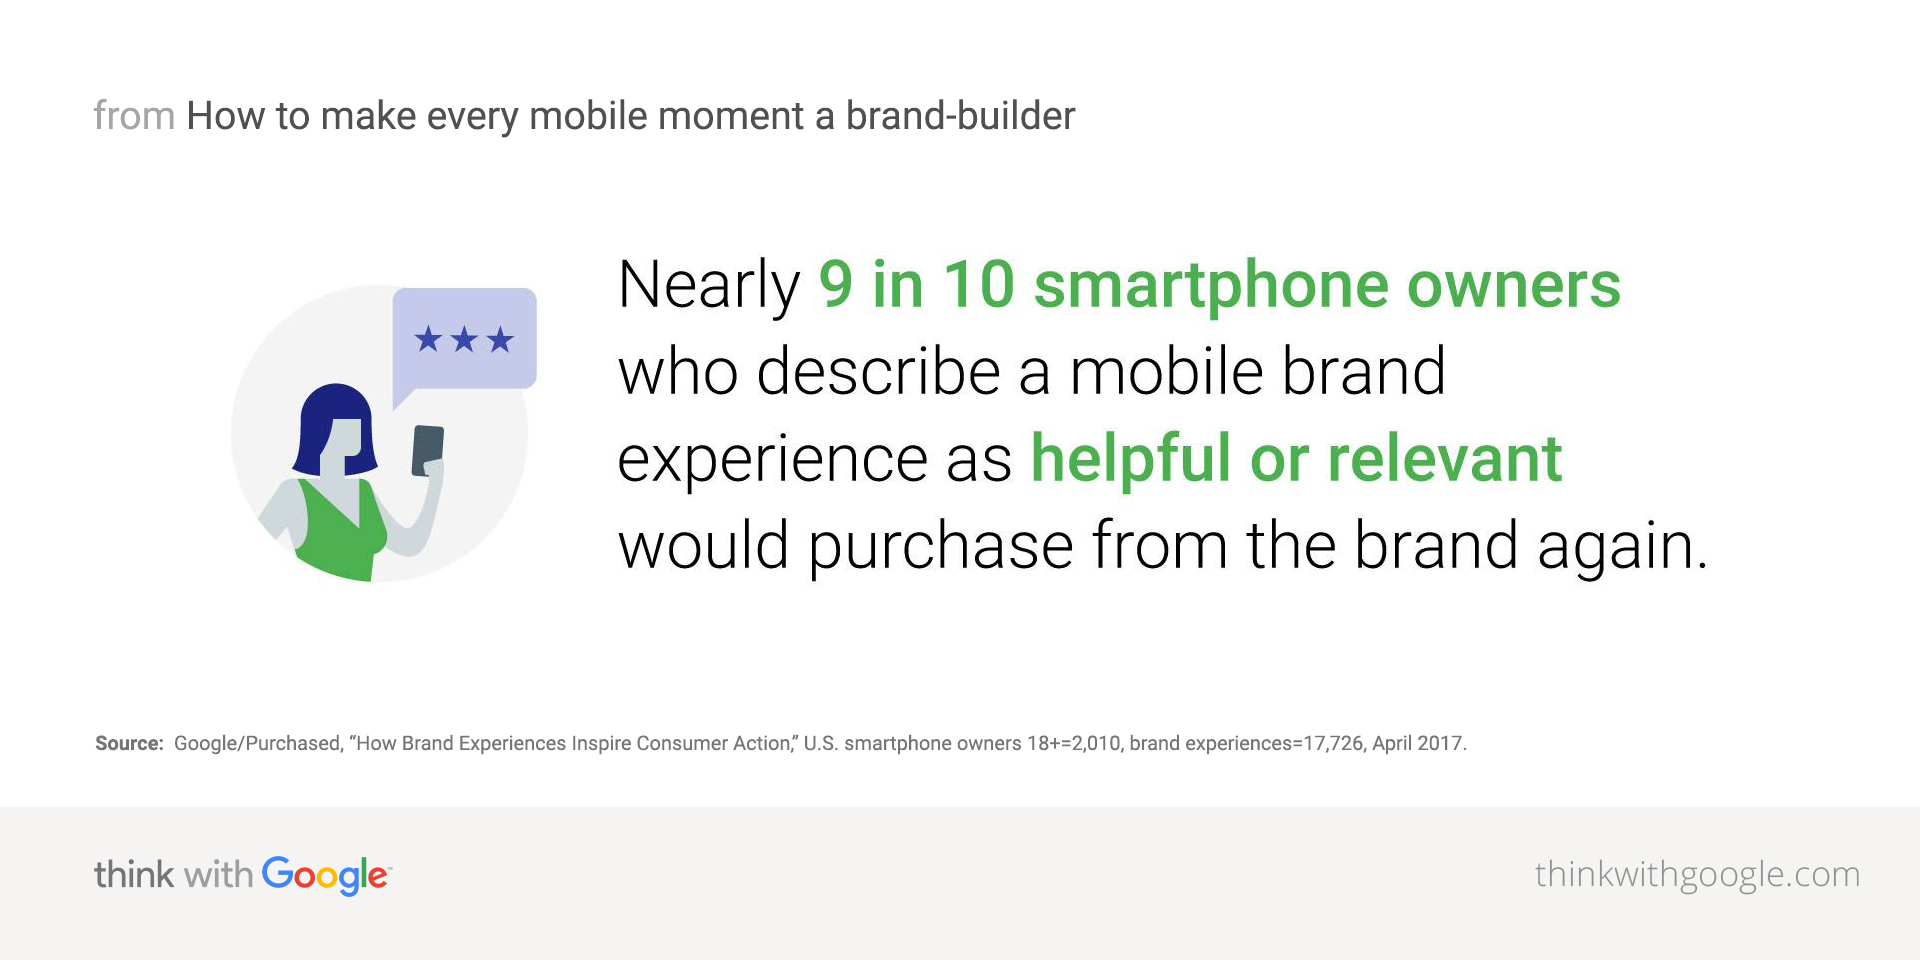 Nearly 9 in 10 smartphone owners who describe a mobile brand experience as helpful or relevant would purchase from the brand again.